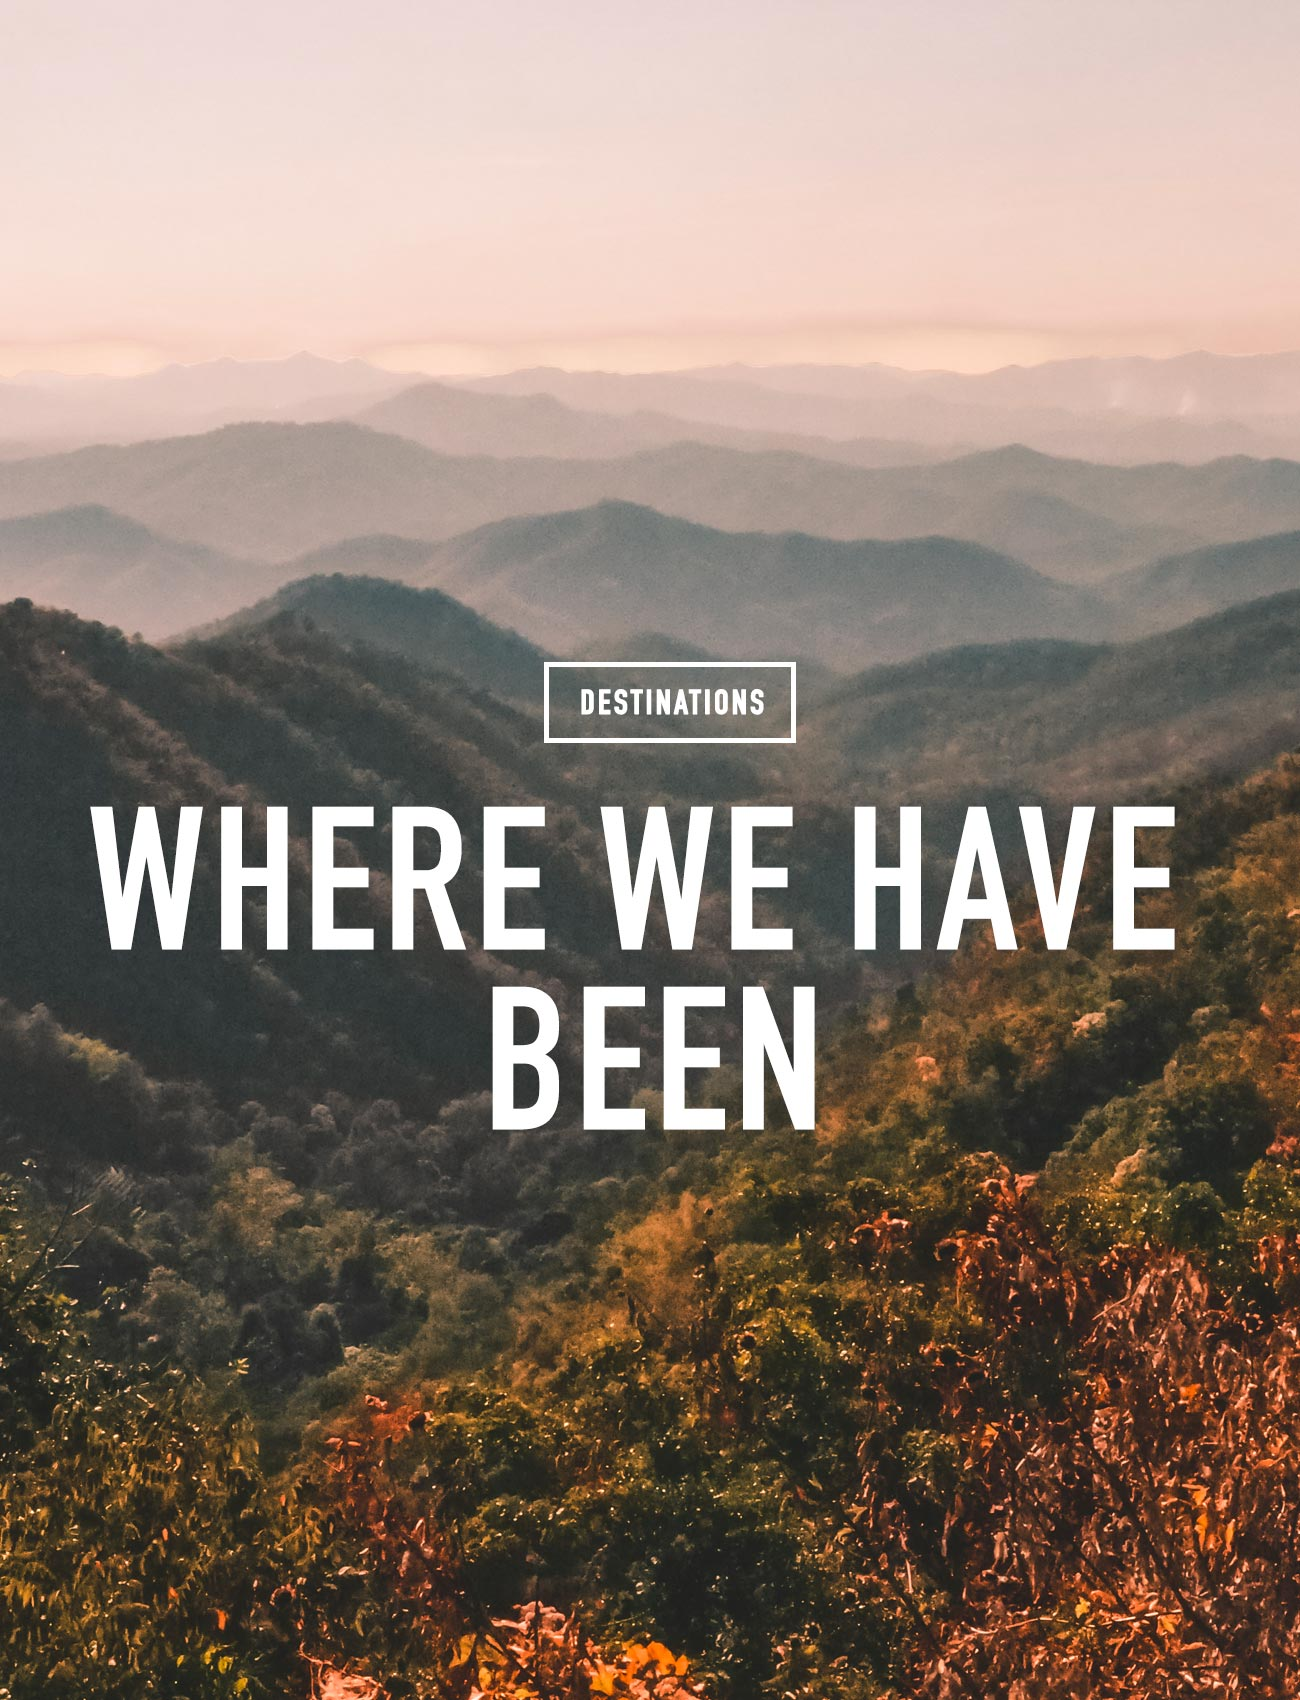 WHERE WE HAVE BEEN